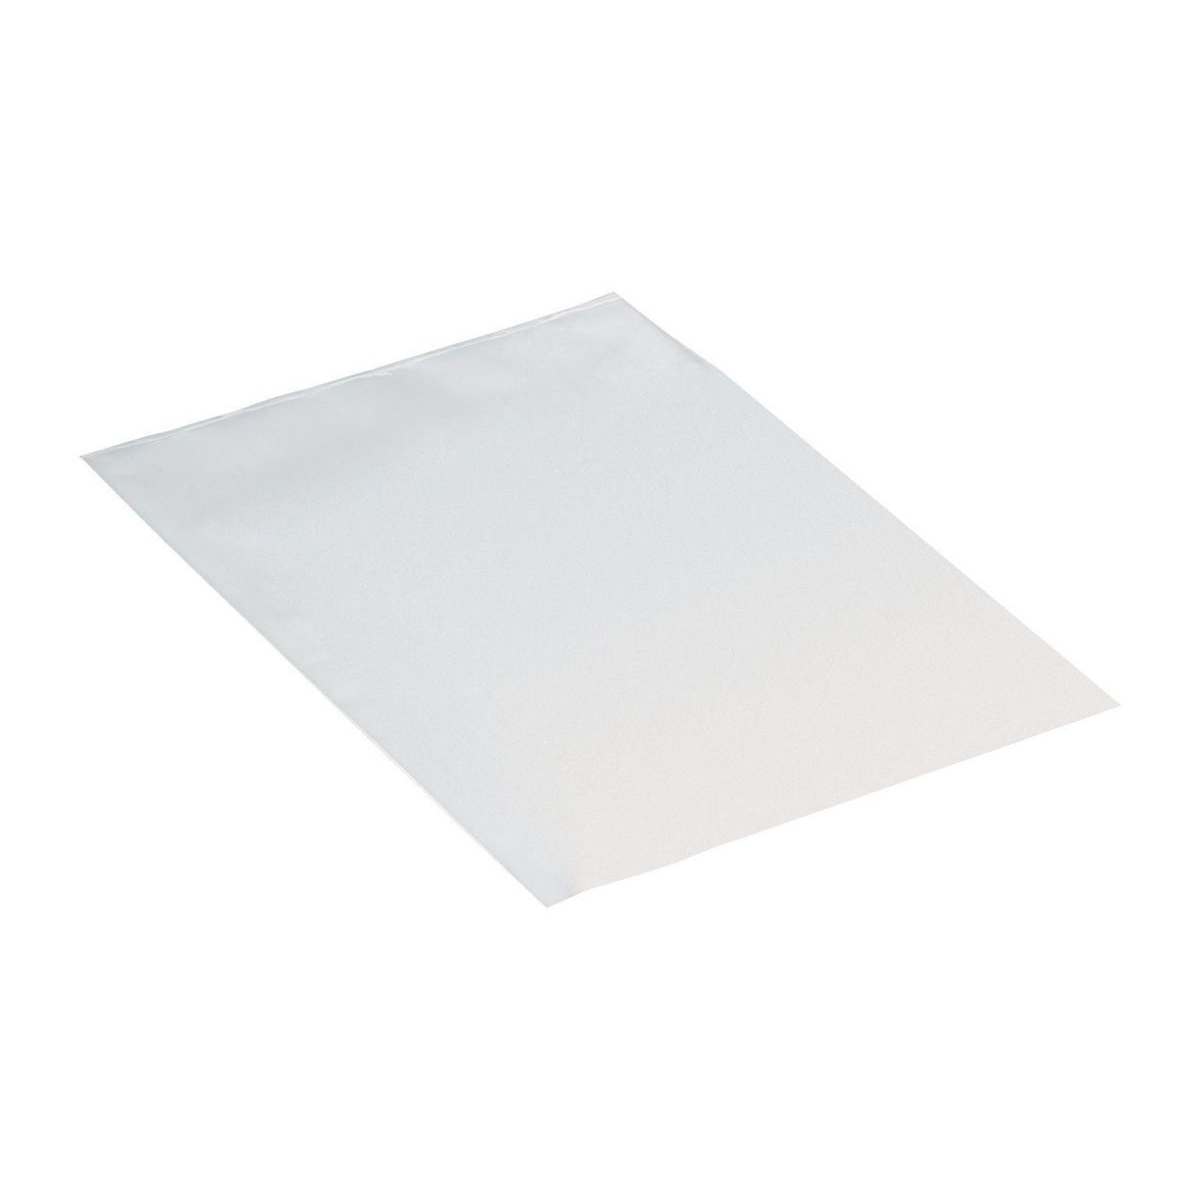 Image for Polythene Bags 450x600mm 25 Micron Clear [Pack 500]